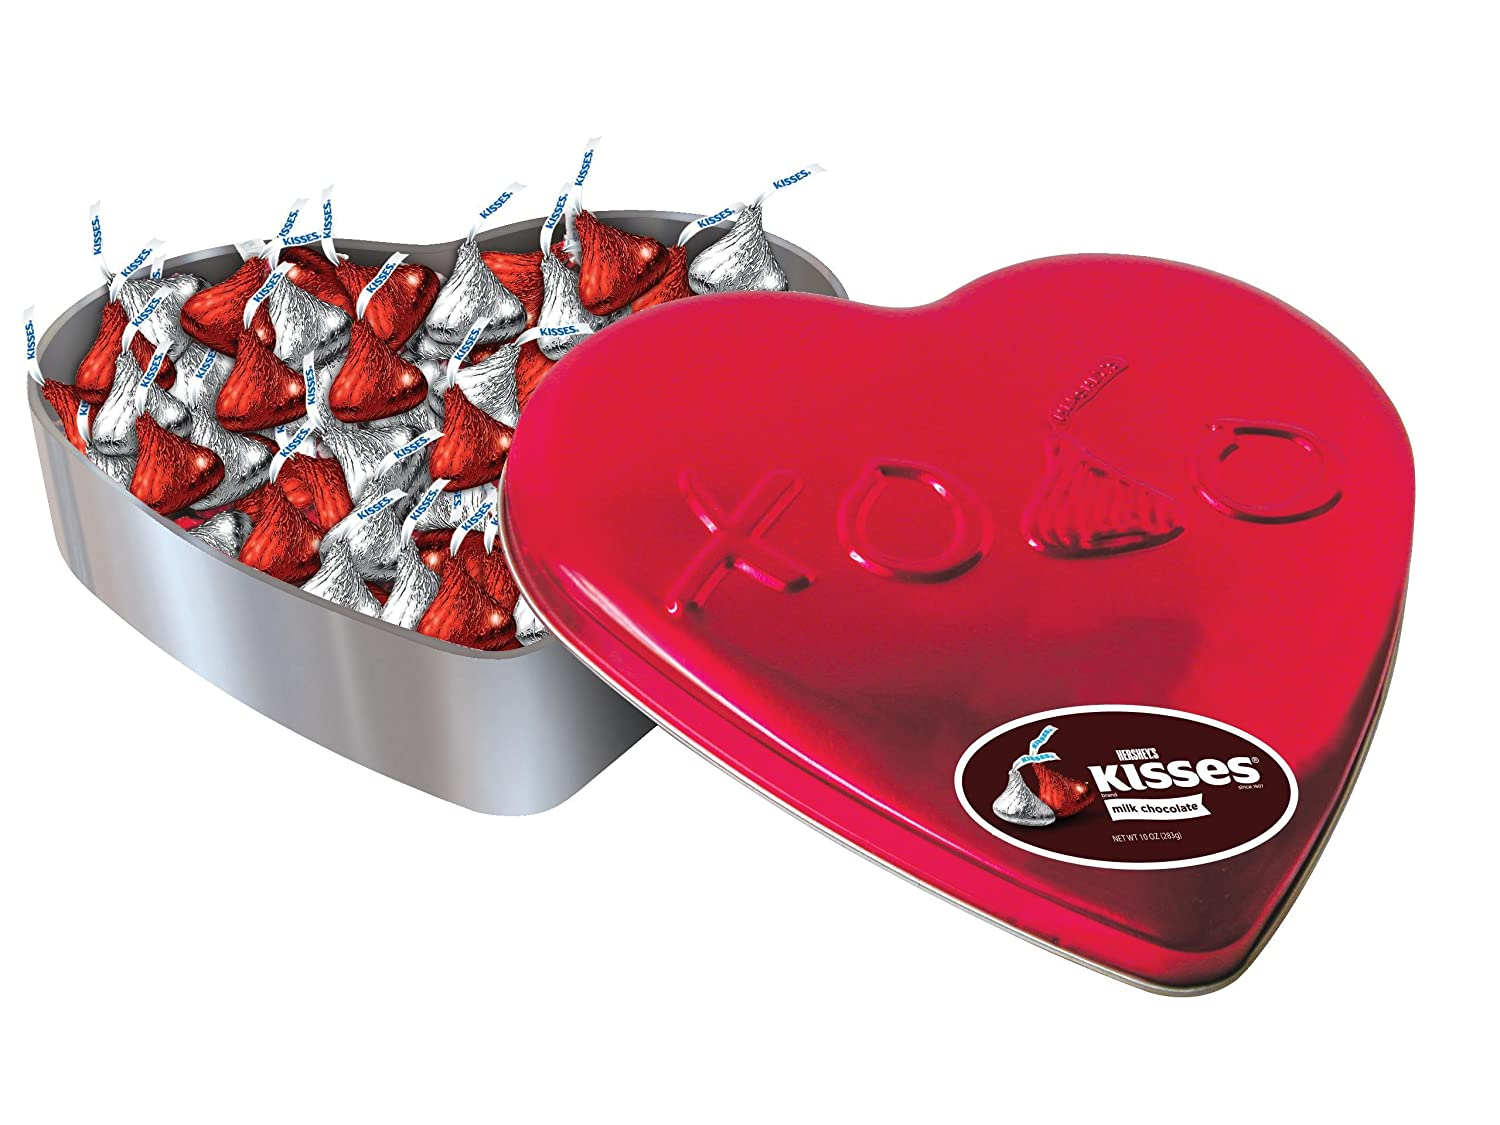 Amazon.com : Hersheyu0027s Valentineu0027s Kisses Milk Chocolate, 10 Ounce Heart  Tin : Chocolate Assortments And Samplers : Grocery U0026 Gourmet Food